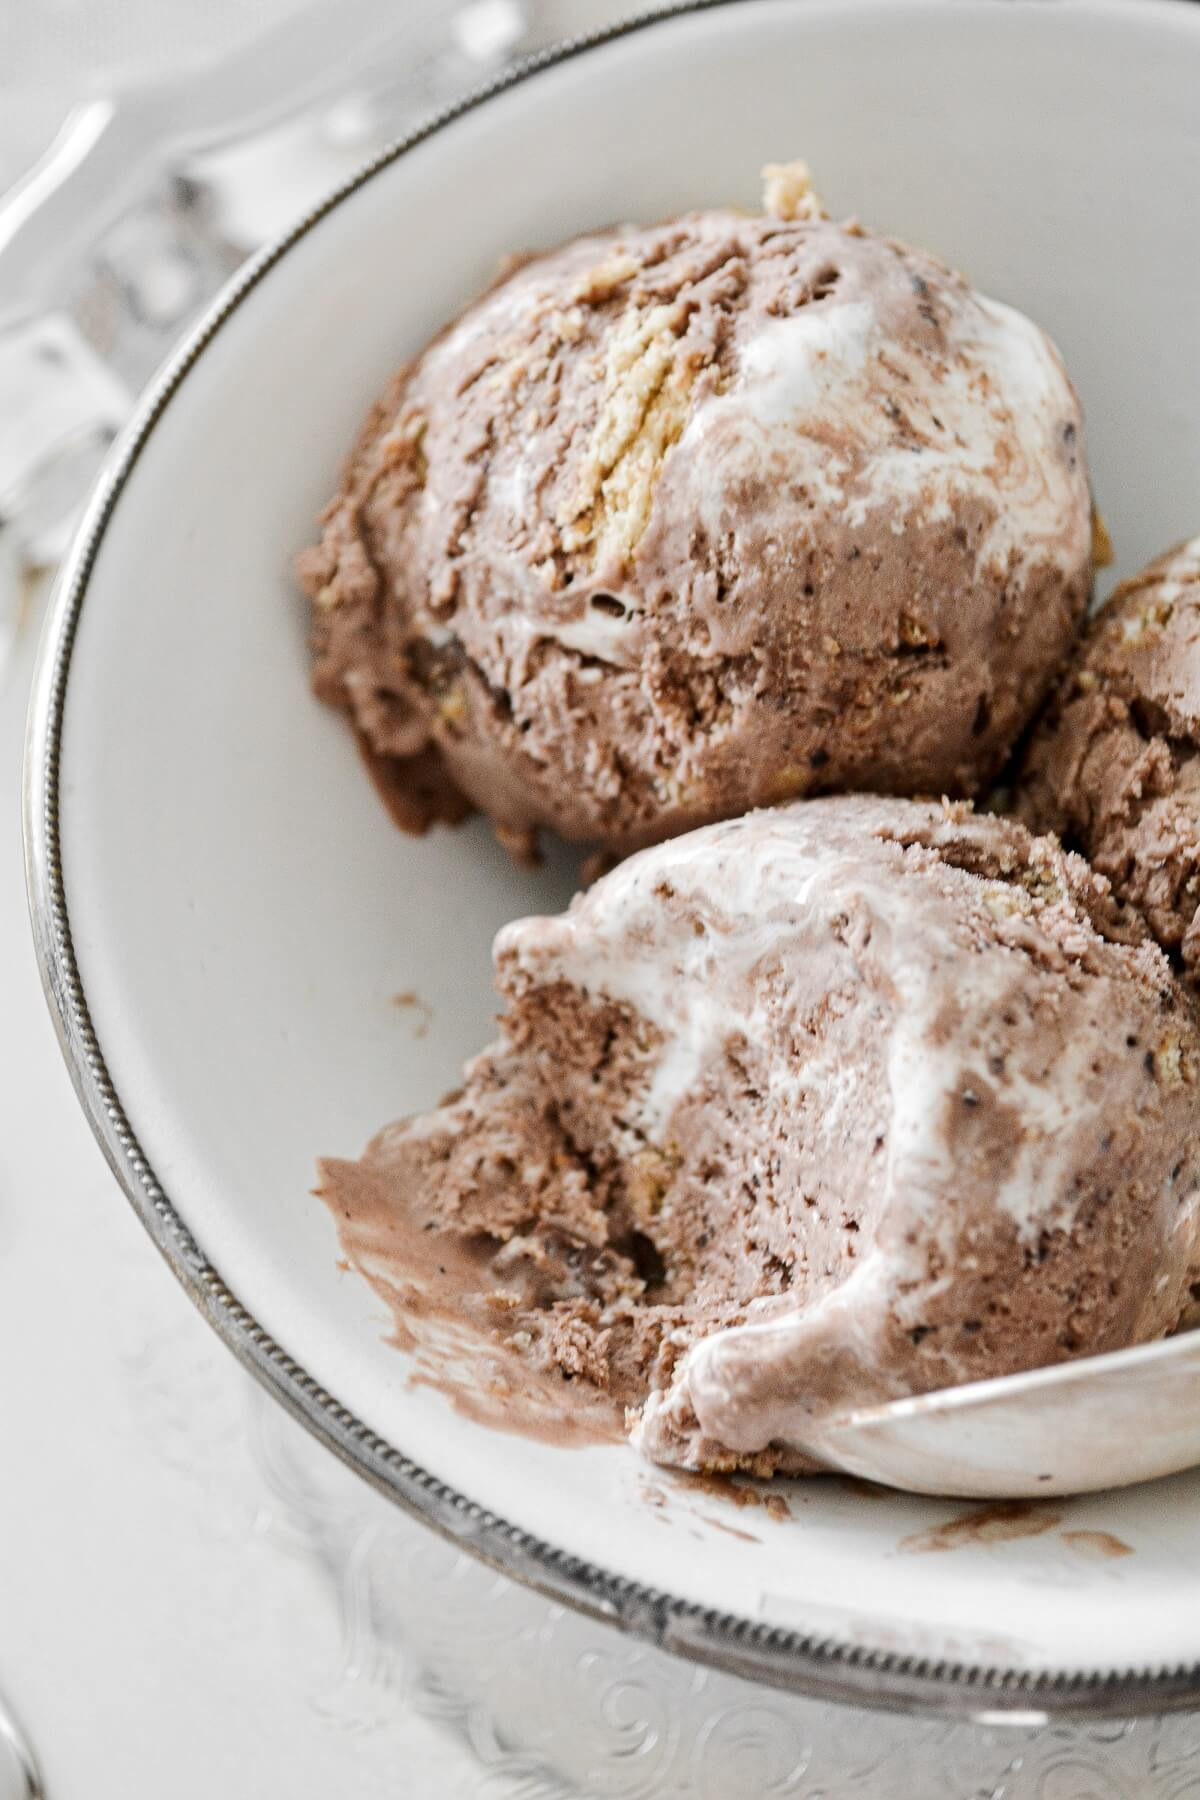 Scoops of no churn s'mores ice cream.